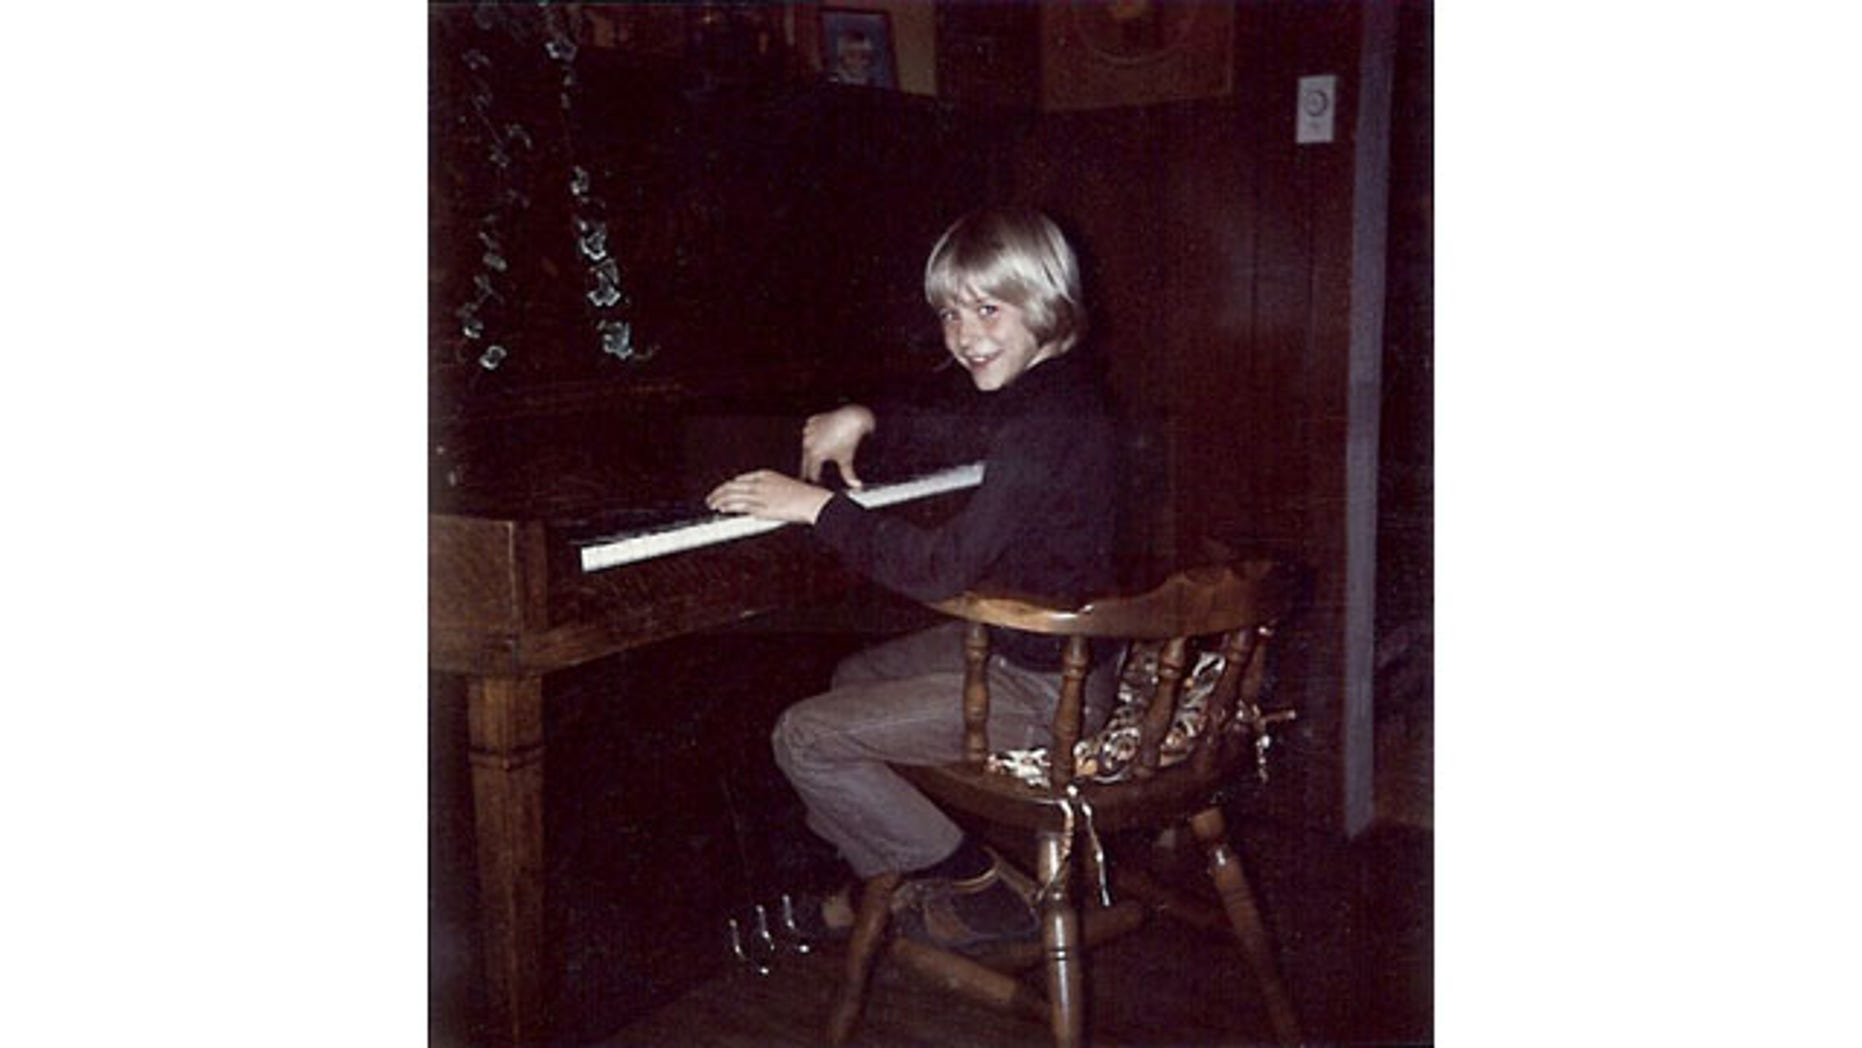 September 24, 2013: In this undated photo provided by Kim Cobain, a young Kurt Cobain plays piano in his childhood home in Aberdeen, Wash. Cobain's mother, Wendy O'Connor, is putting the 1.5-story Aberdeen bungalow, which is assessed at less than $67,000,  on the market for $500,000. But she'd also be happy entering into a partnership with anyone who wants to turn it into a museum. (AP Photo)